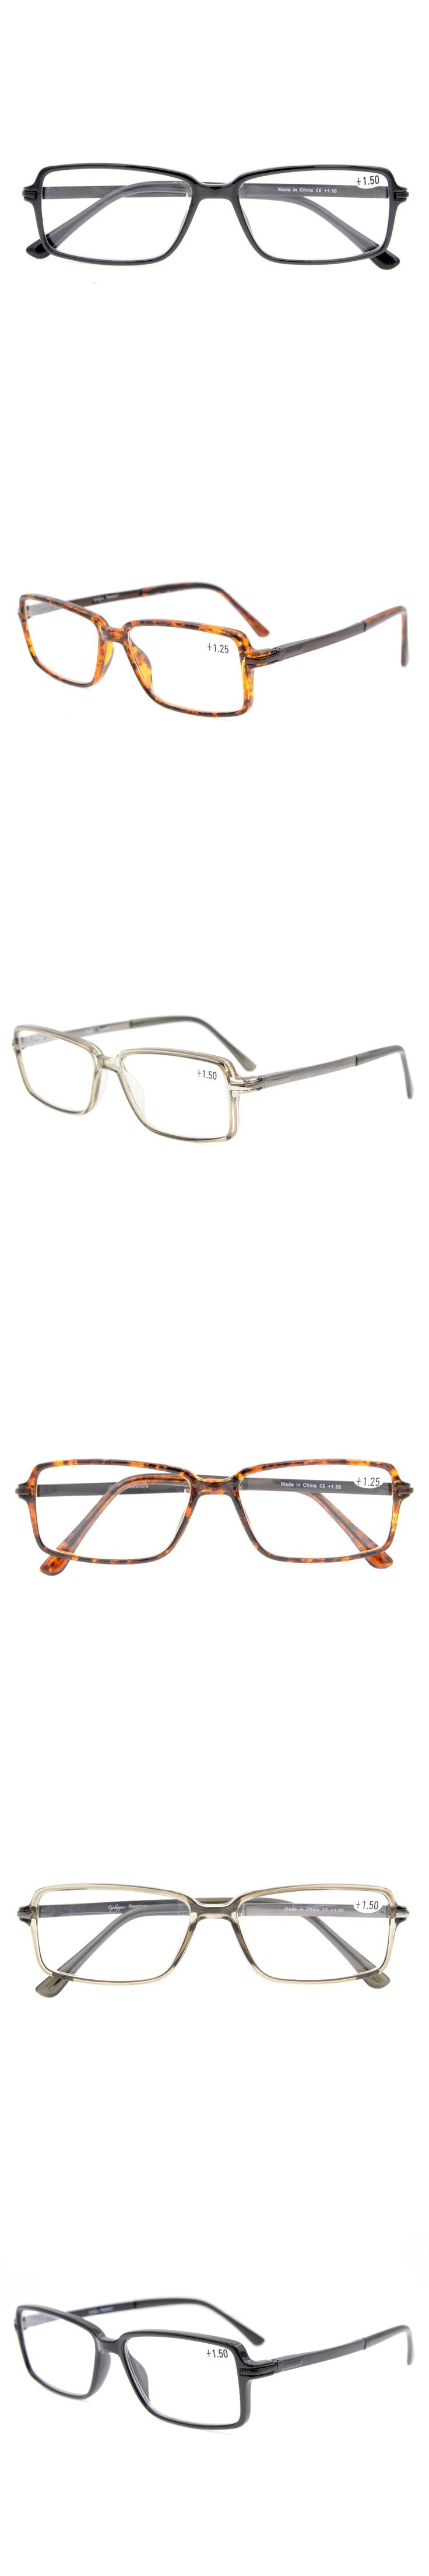 TR006 Eyekepper Classic Rectangle TR90 Frame Spring Hinges Reading Glasses Stylish Crystal Clear Vision +0.50---+3.00